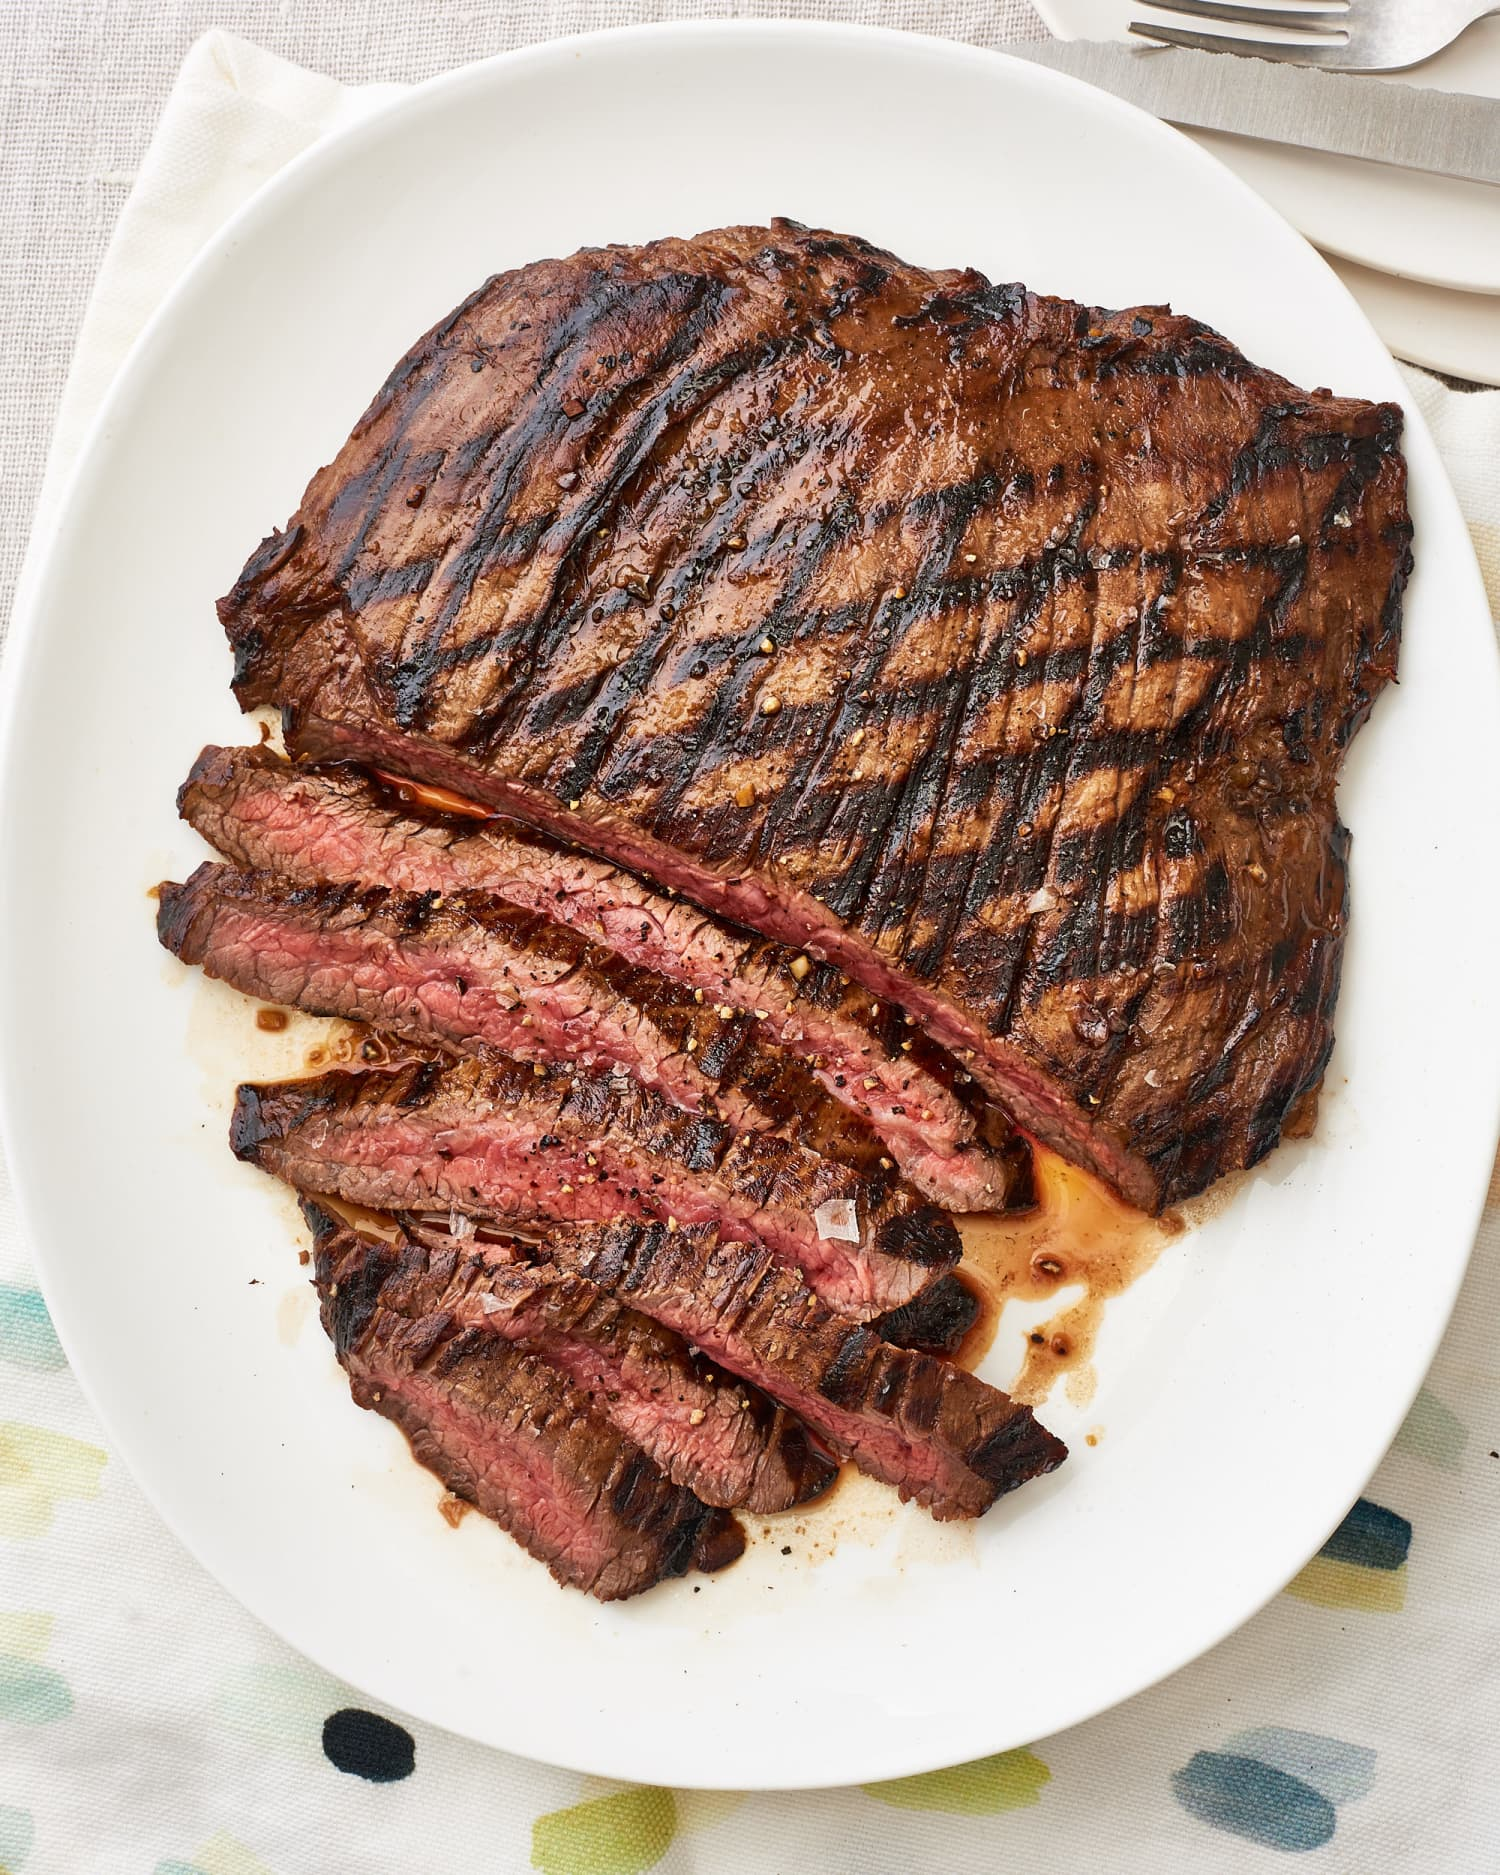 How To Make the Ultimate Marinade for Tender Grilled Steak